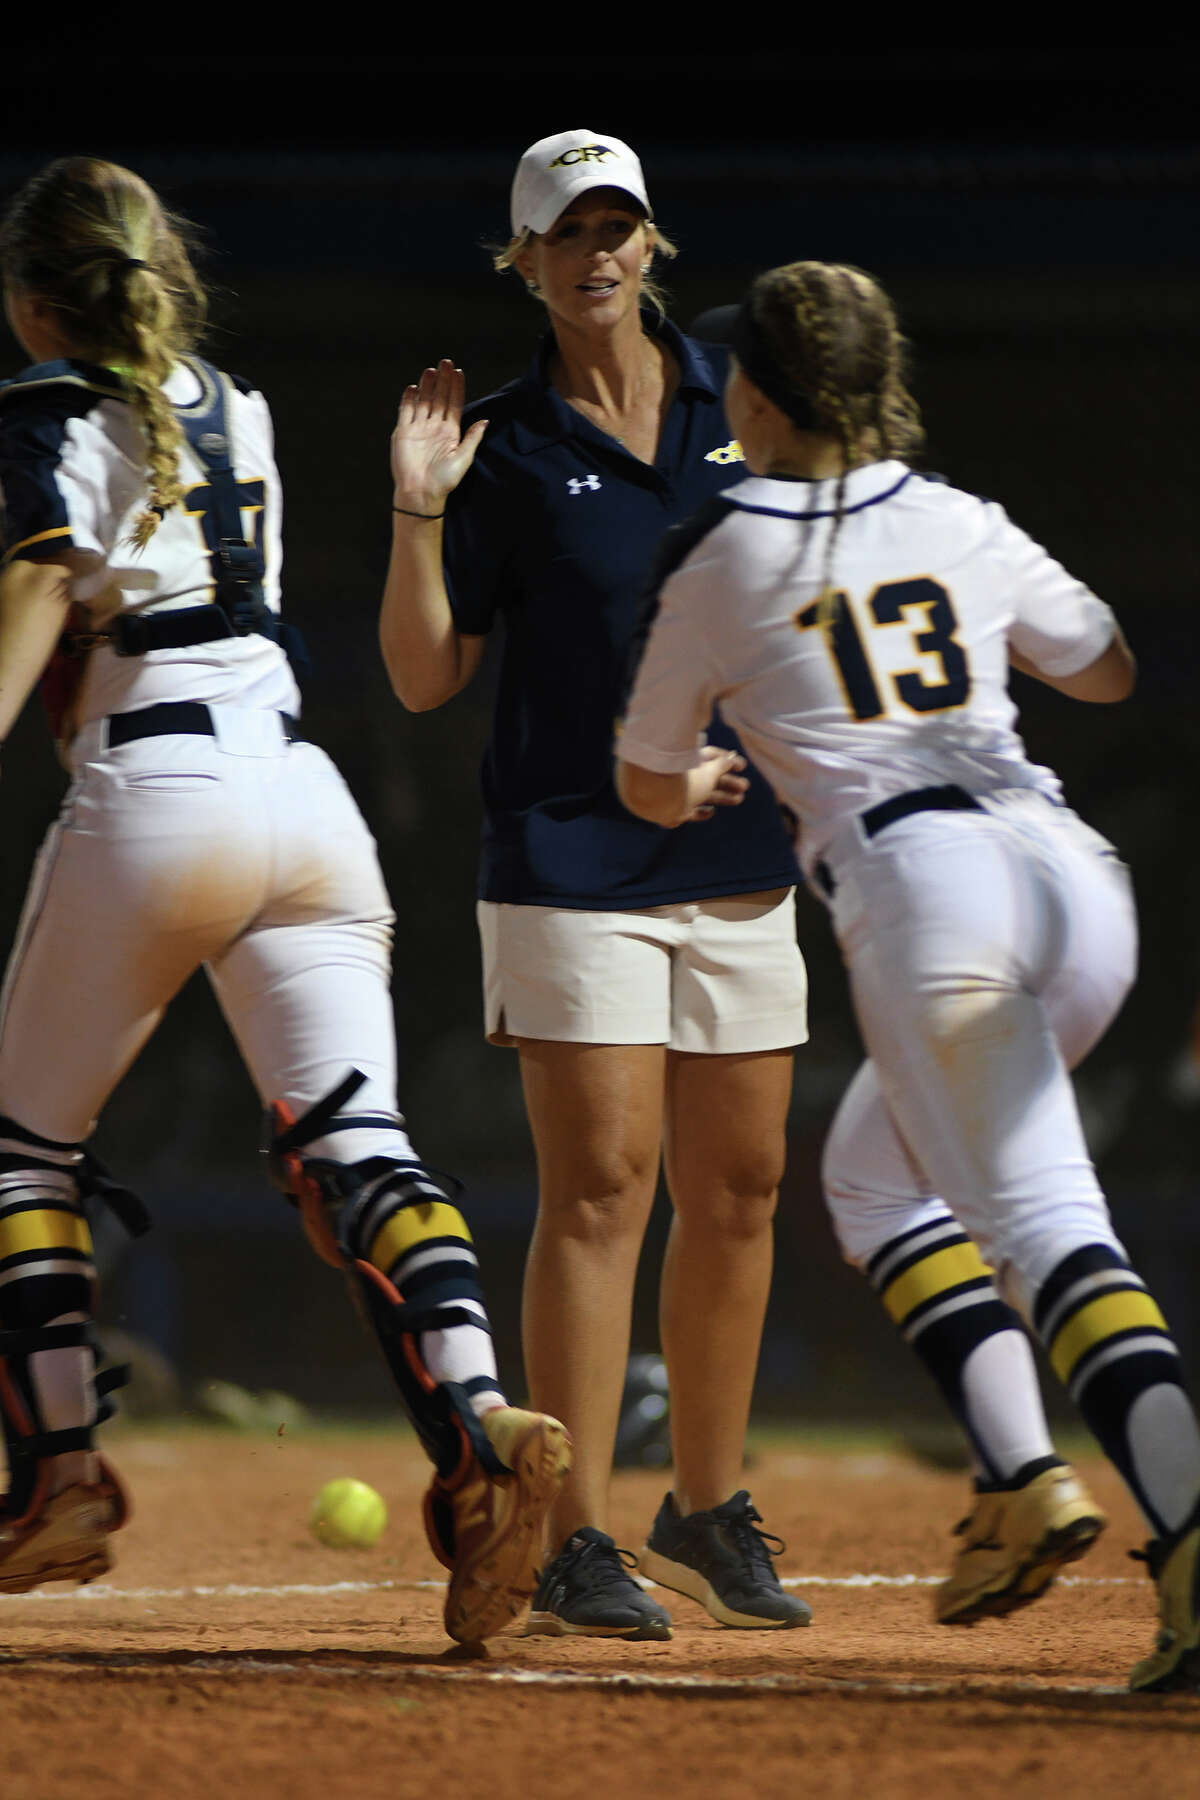 Cy Ranch Head Softball Coach Sarah Mueller congratulates freshman Mackenzie Stuart (13) after the Mustang's 1-0 win over Clements in their Region III-6A Girls Area Round Softball Playoff matchup at Katy Taylor High School on Friday, May 5, 2017. (Photo by Jerry Baker/Freelance